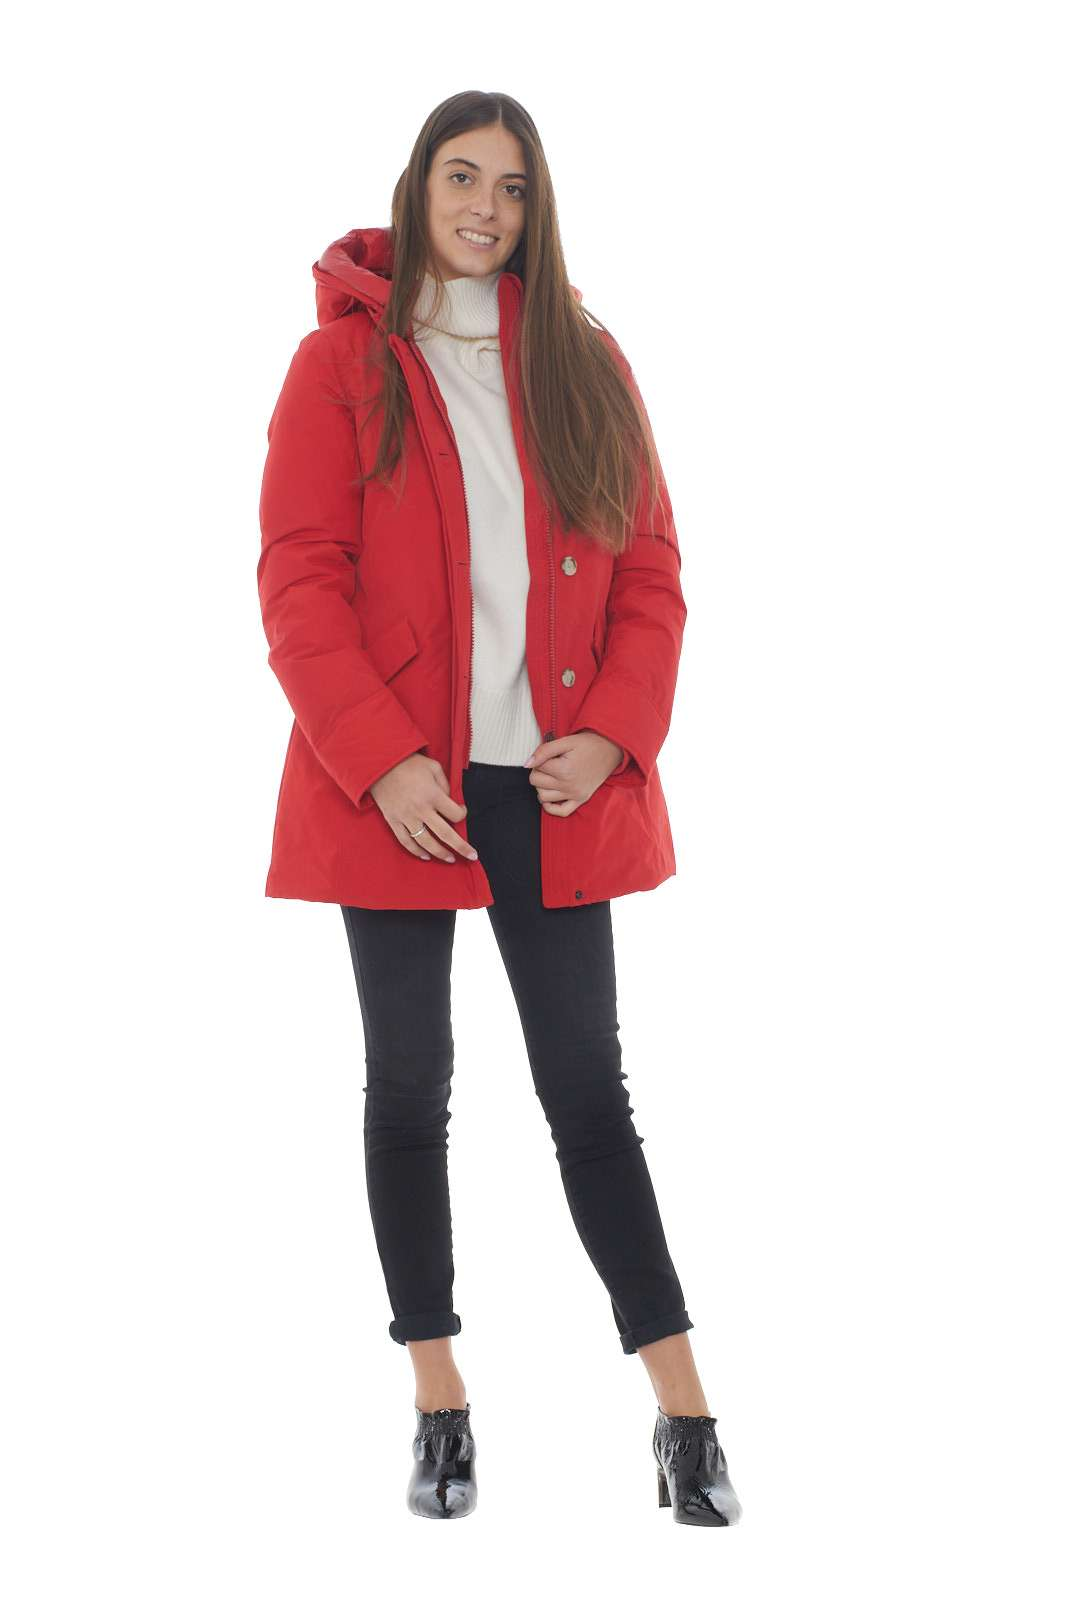 https://www.parmax.com/media/catalog/product/a/i/AI-outlet_parmax-parka-donna-Woolrich-WWCPS2769-D.jpg